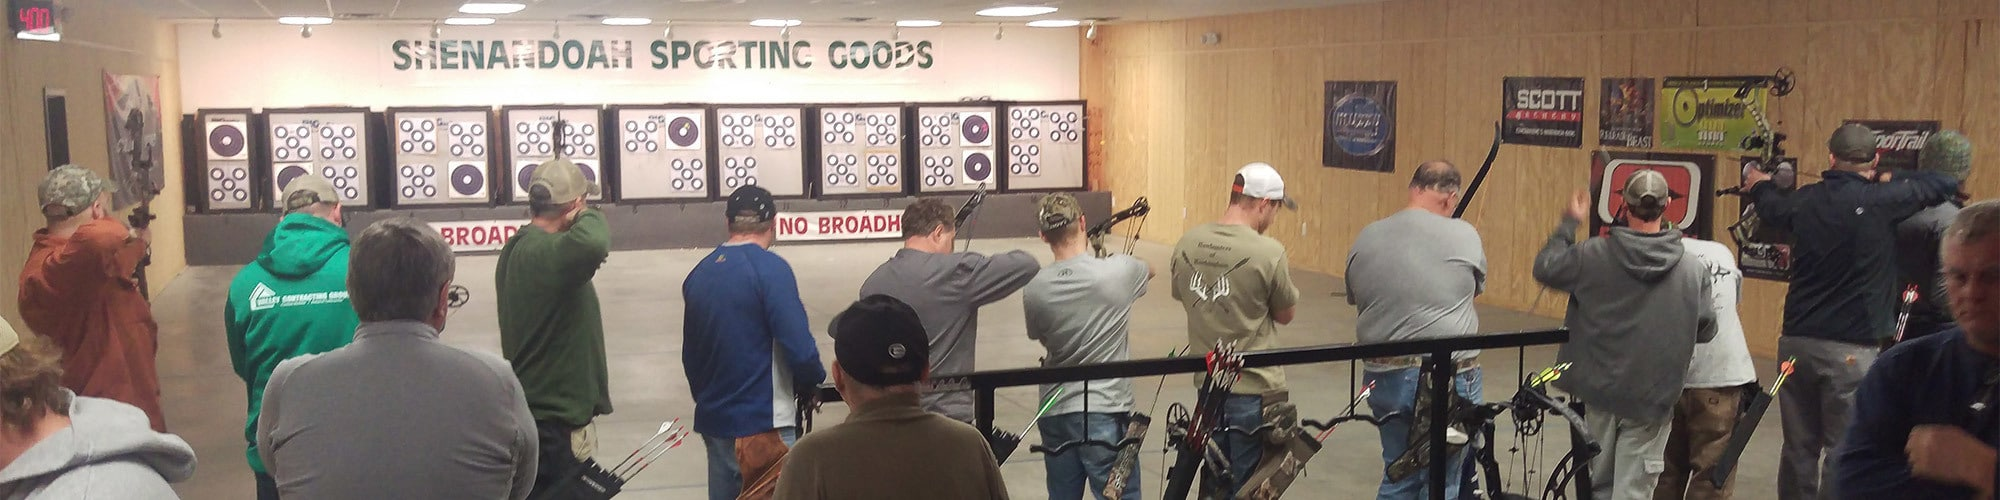 Virginia indoor archery range